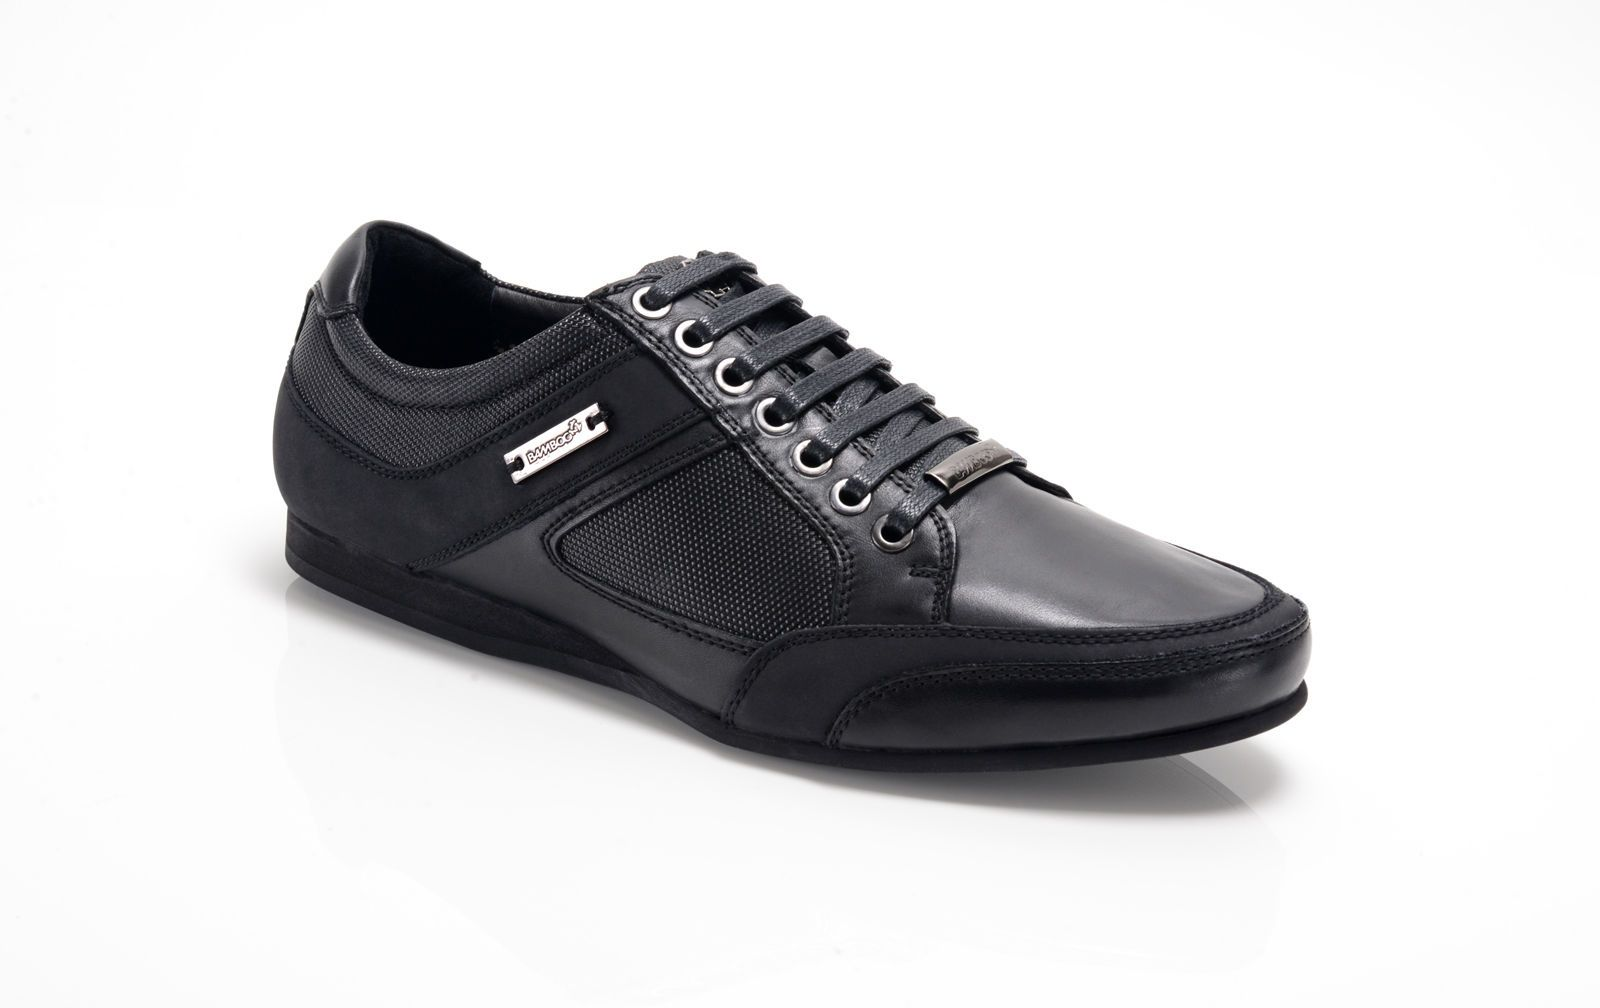 245381ca837c Bambooa Phoenix Black Leather Mens Designer Casual Shoes Trainers